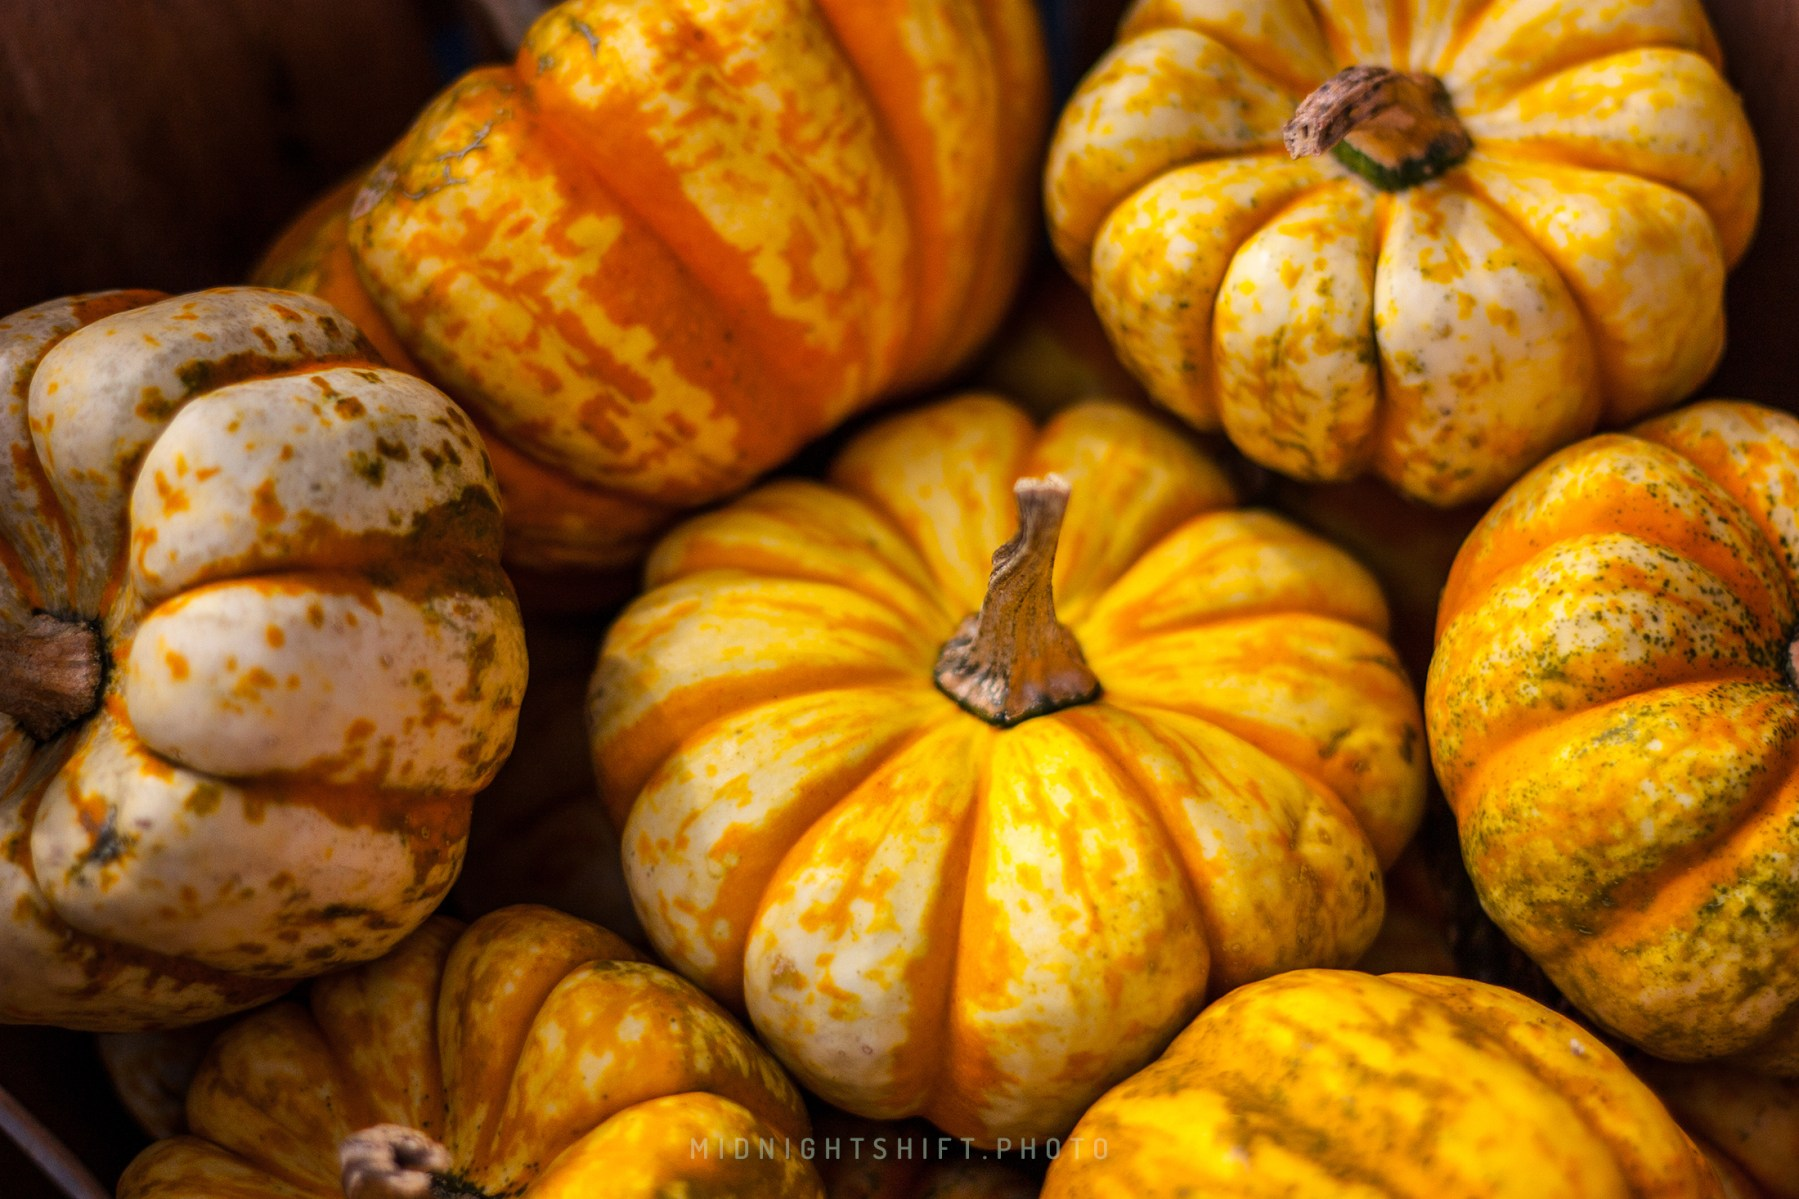 A pile of gourds in acushnet, massachusetts